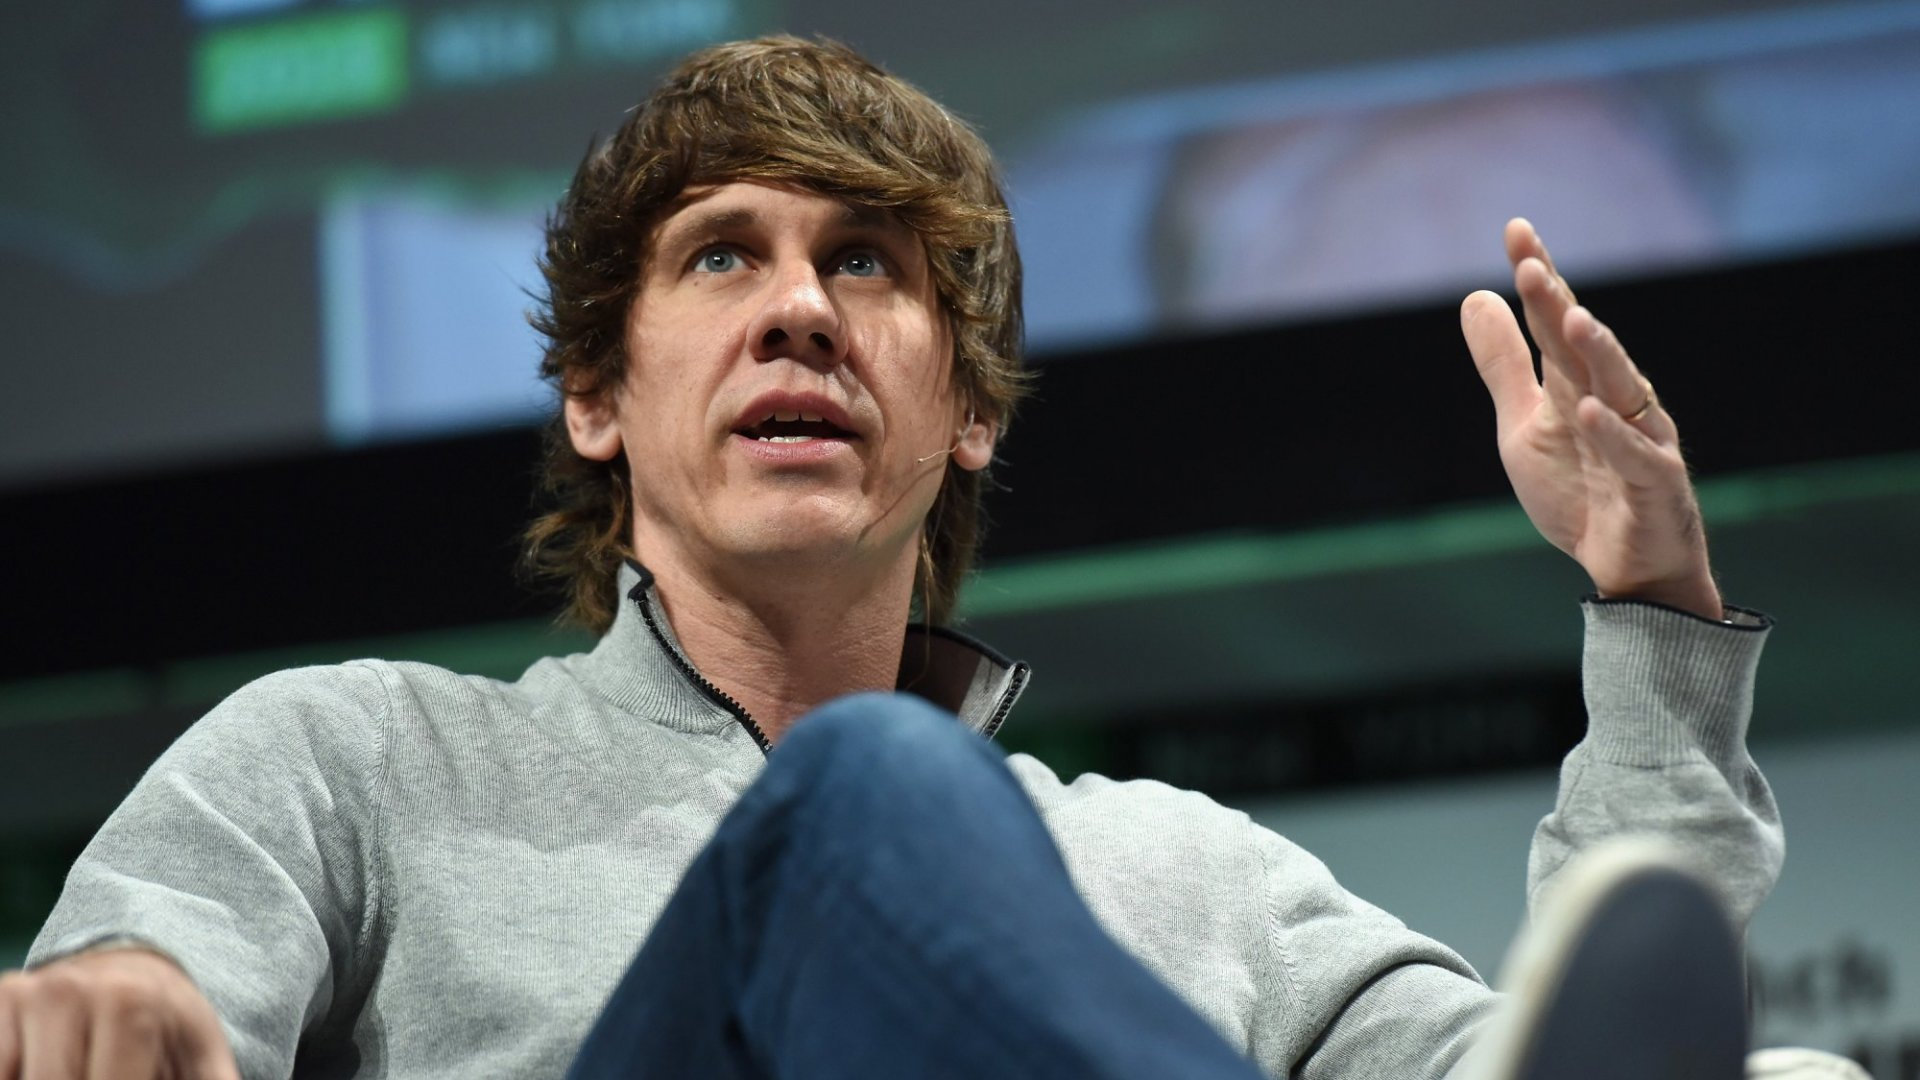 Dennis Crowley, co-founder and CEO of Foursquare.